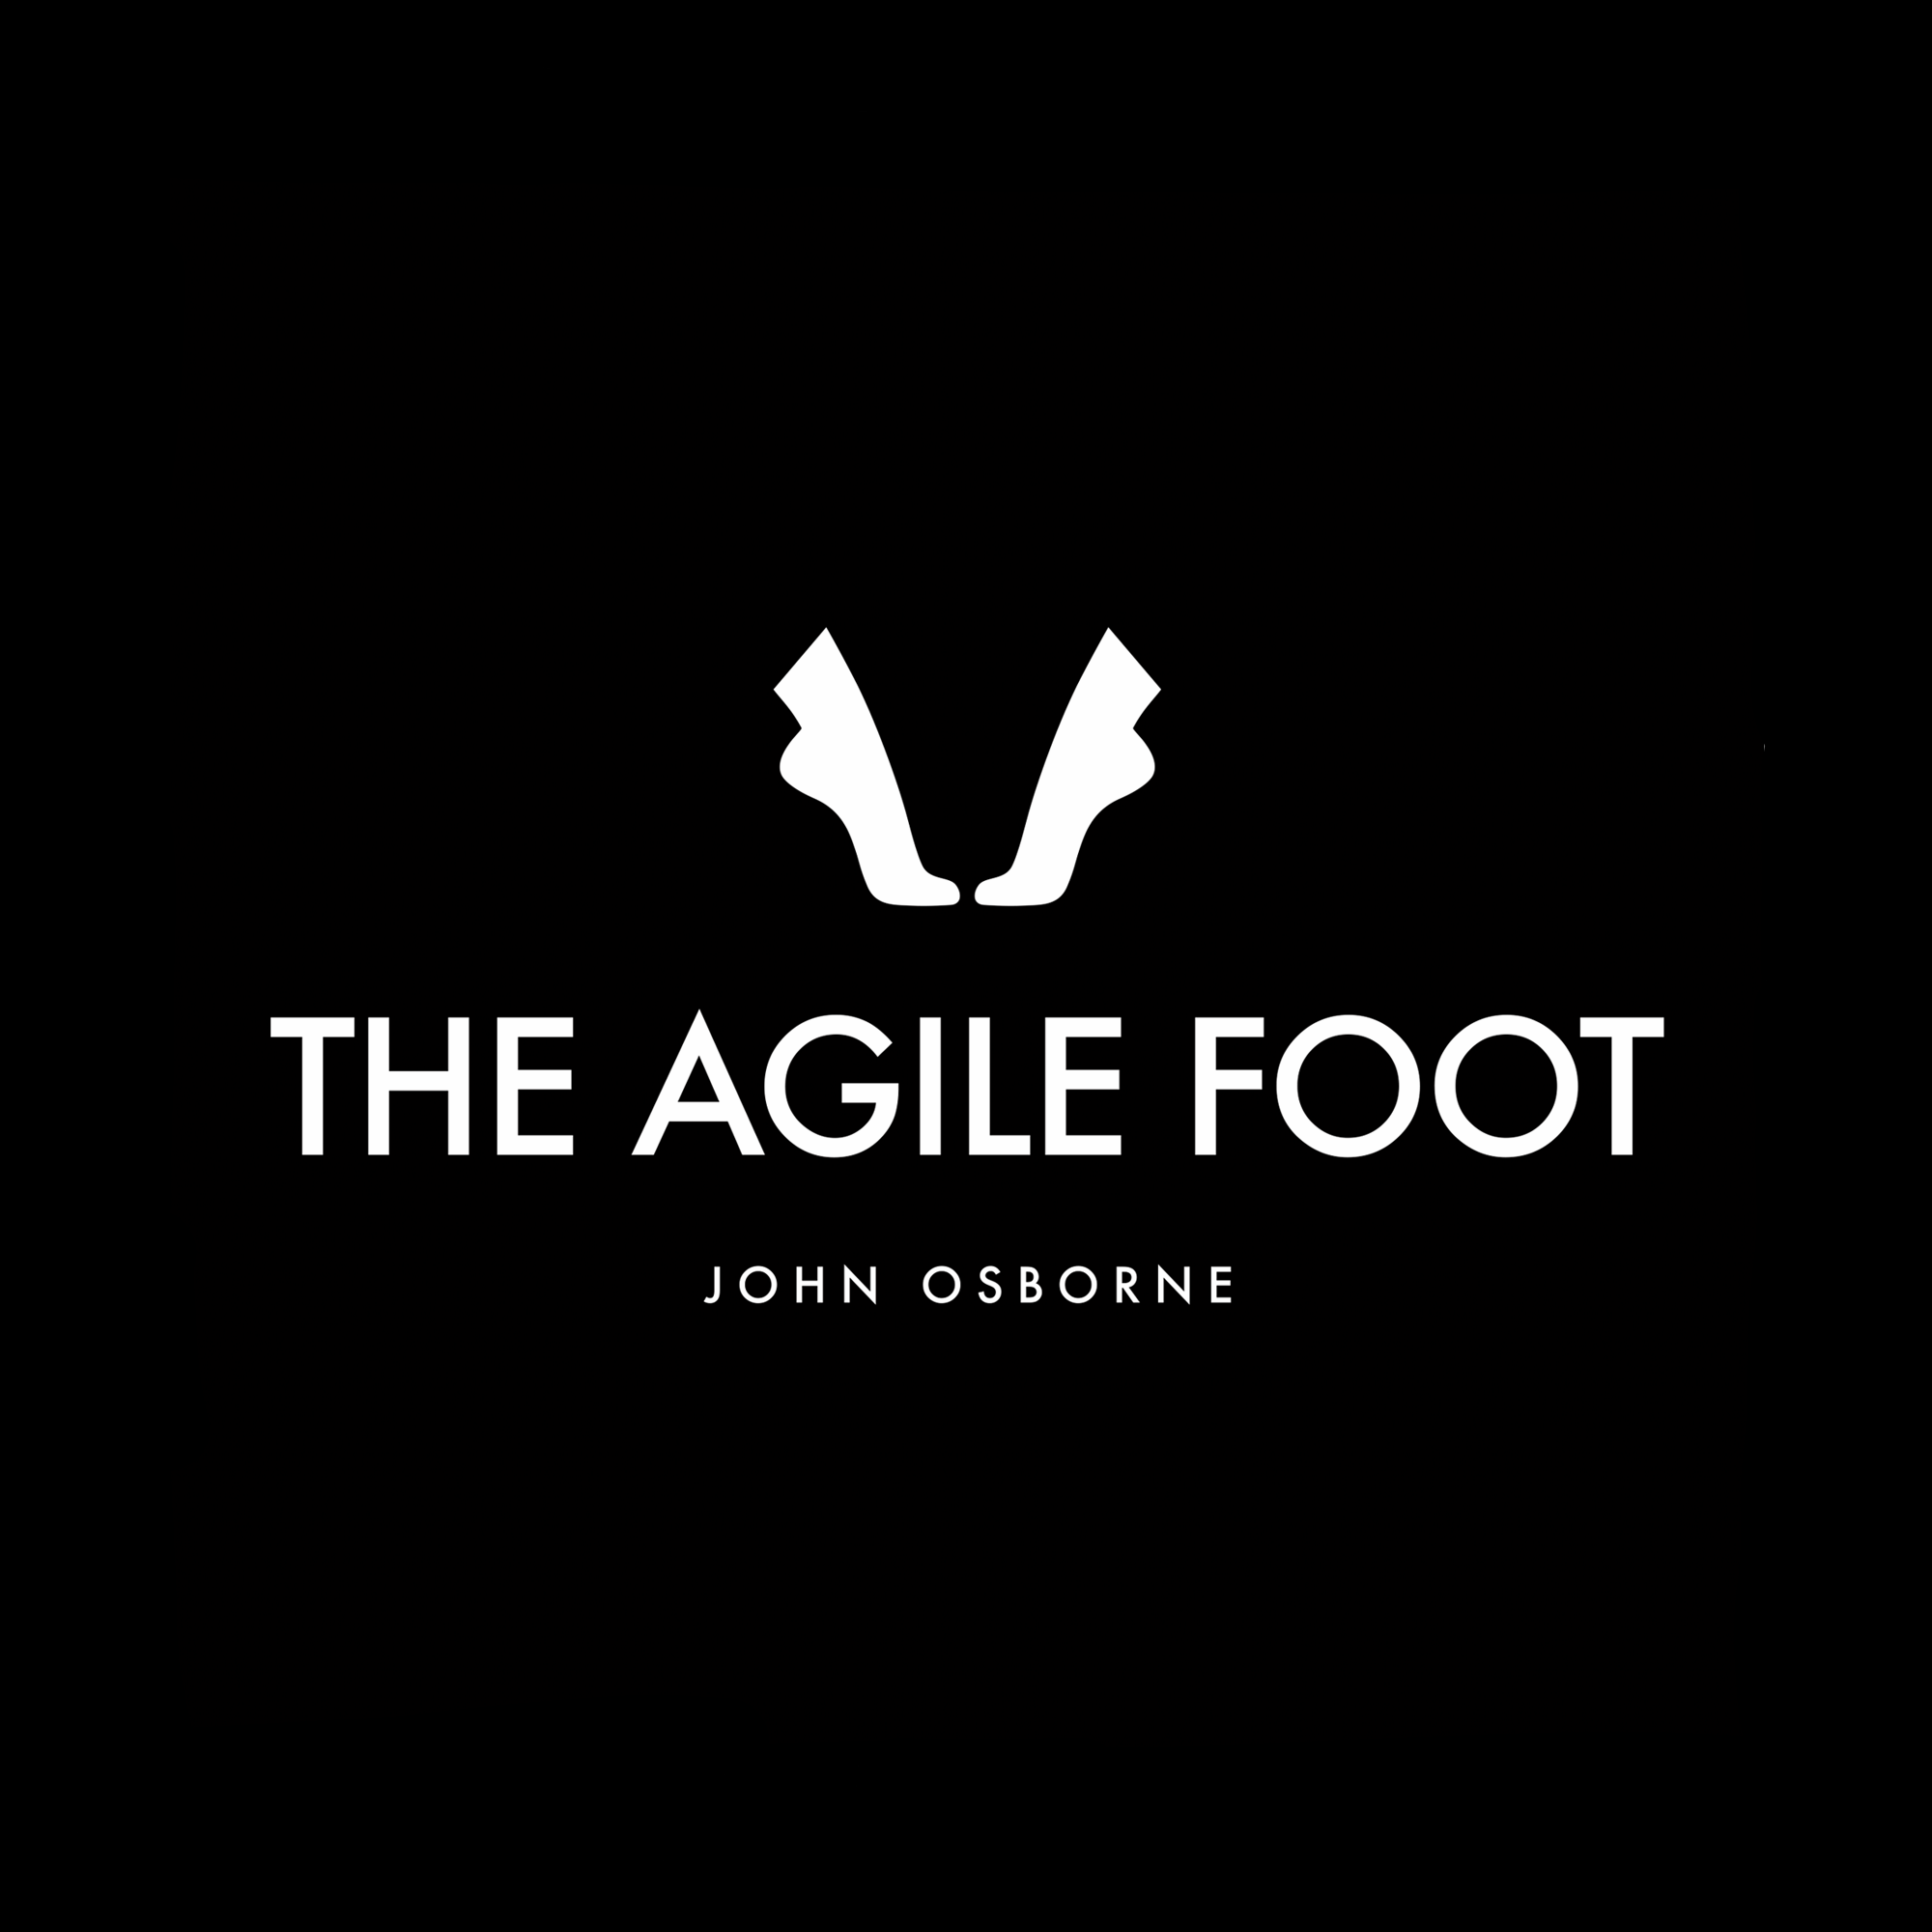 The Agile Foot Logo Design